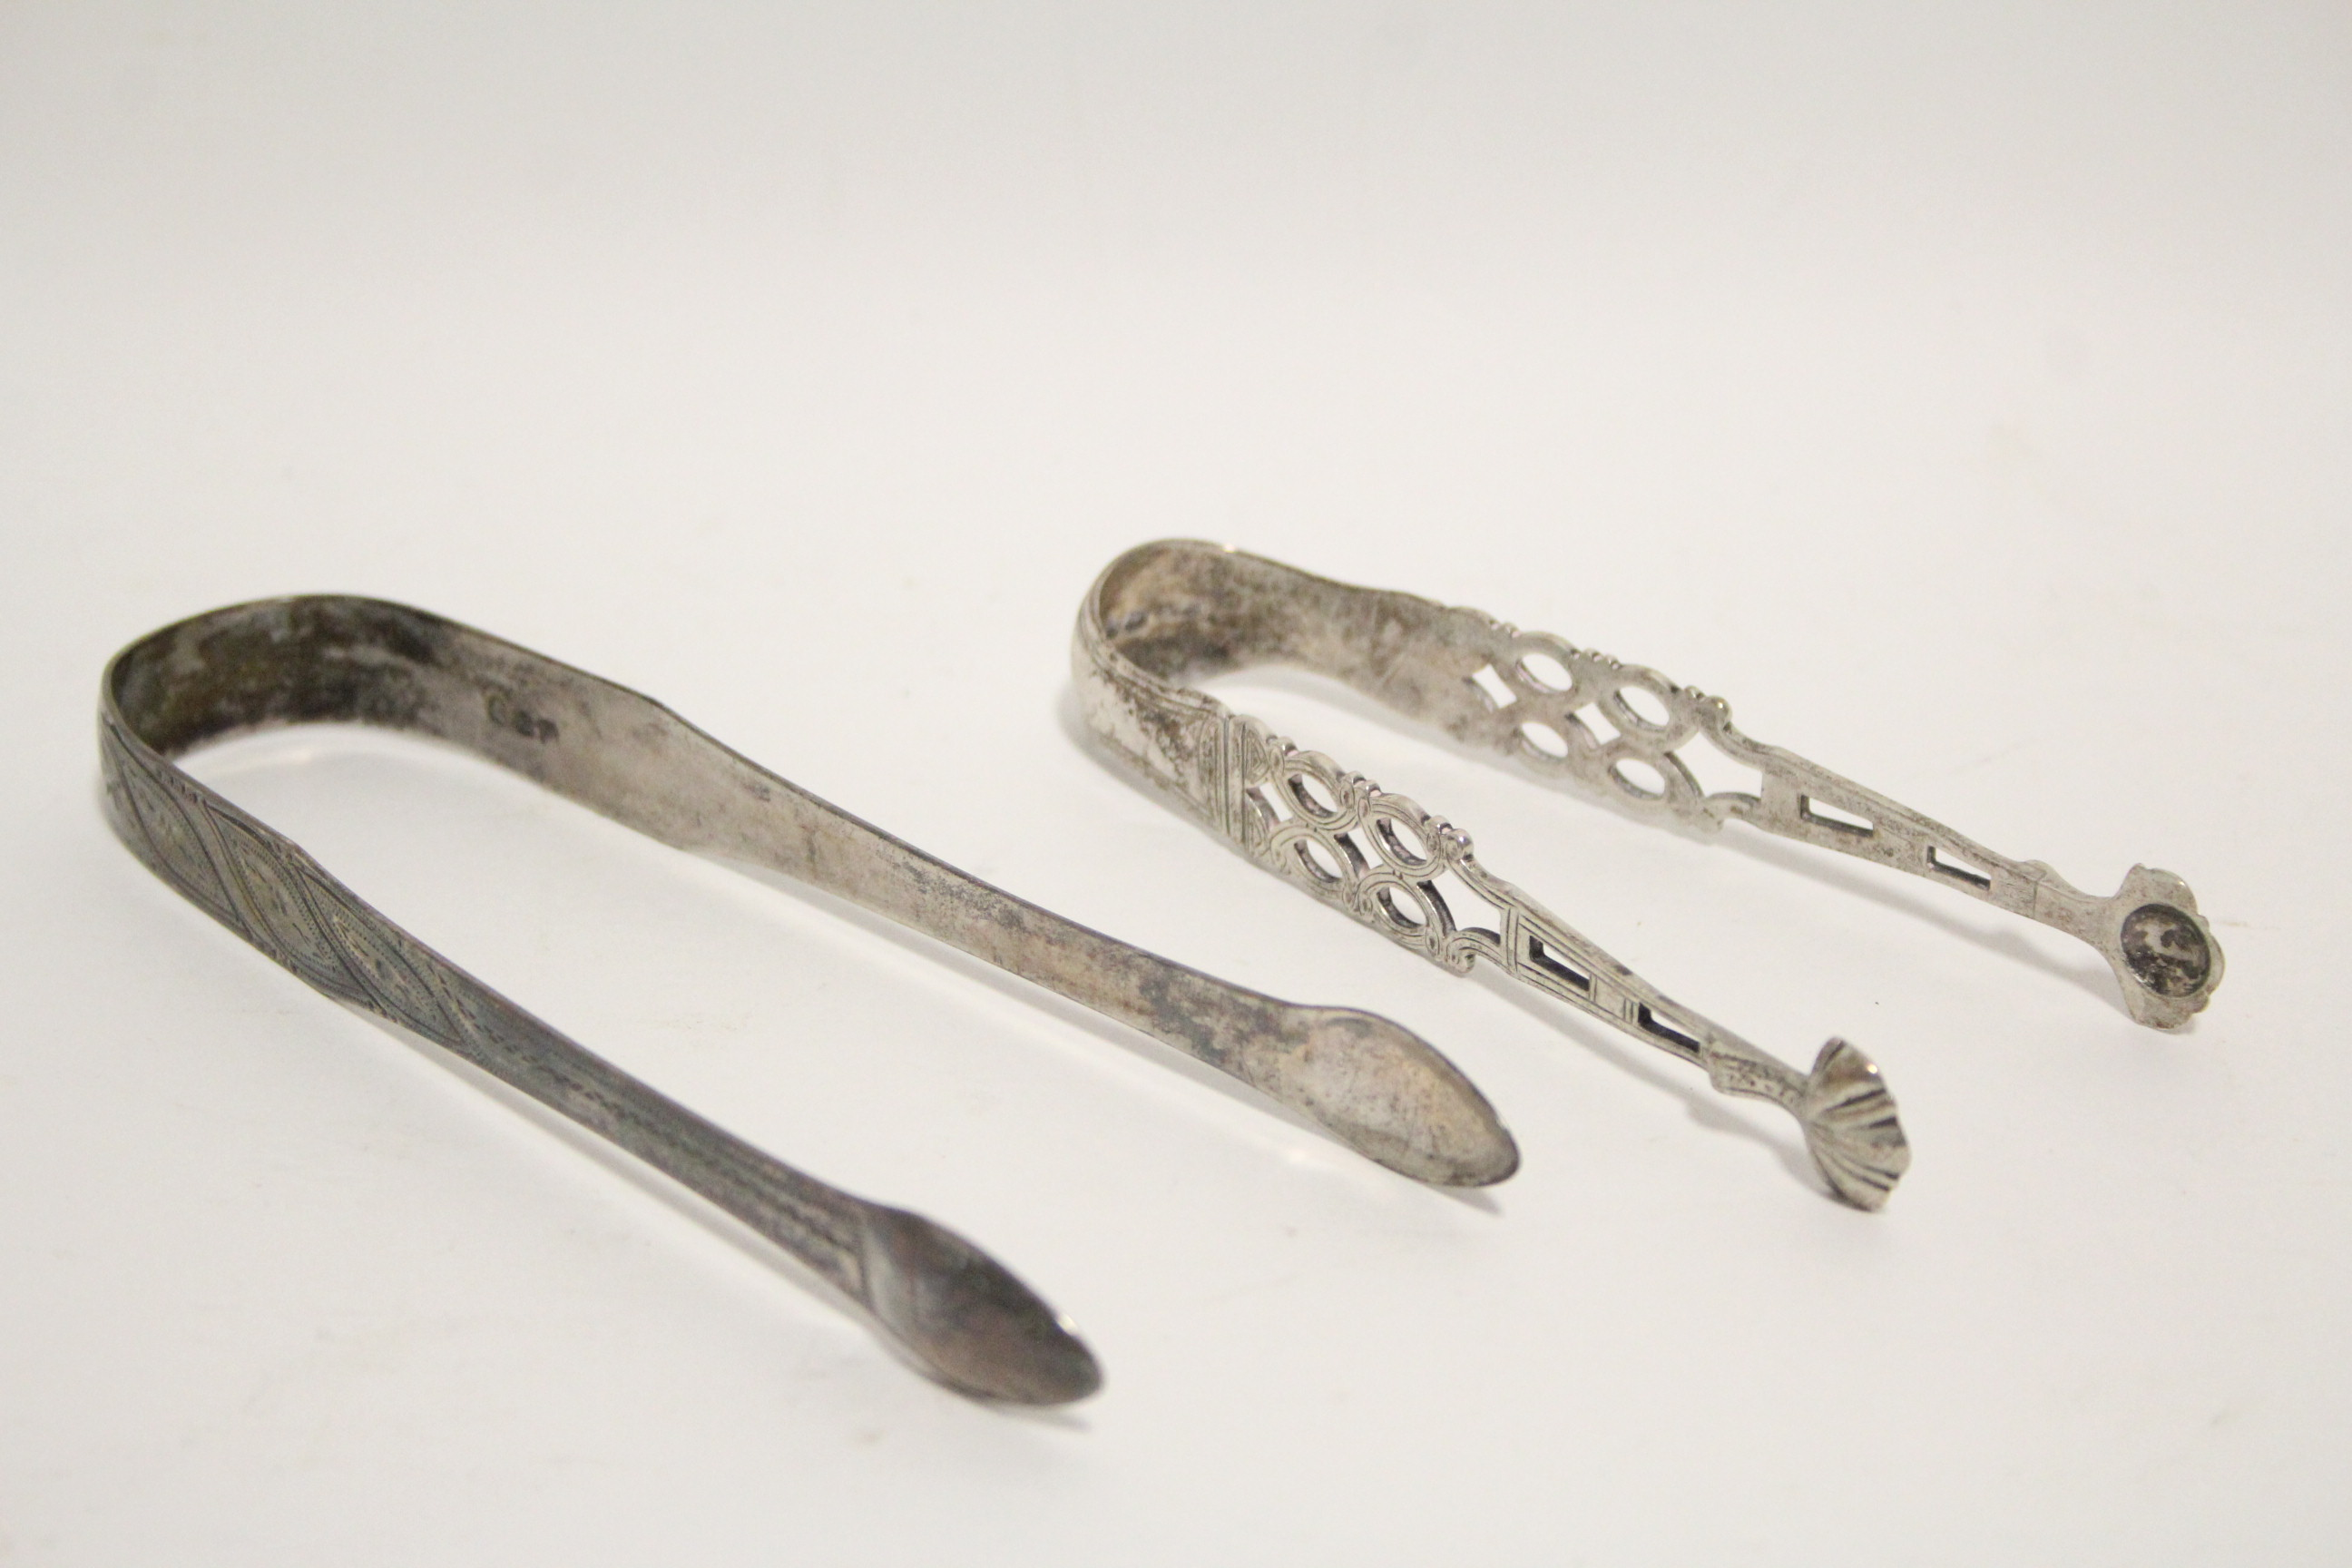 Lot 39 - A pair of Victorian sugar tongs in the mid-18th century style, with pierced stems & shell bowls,